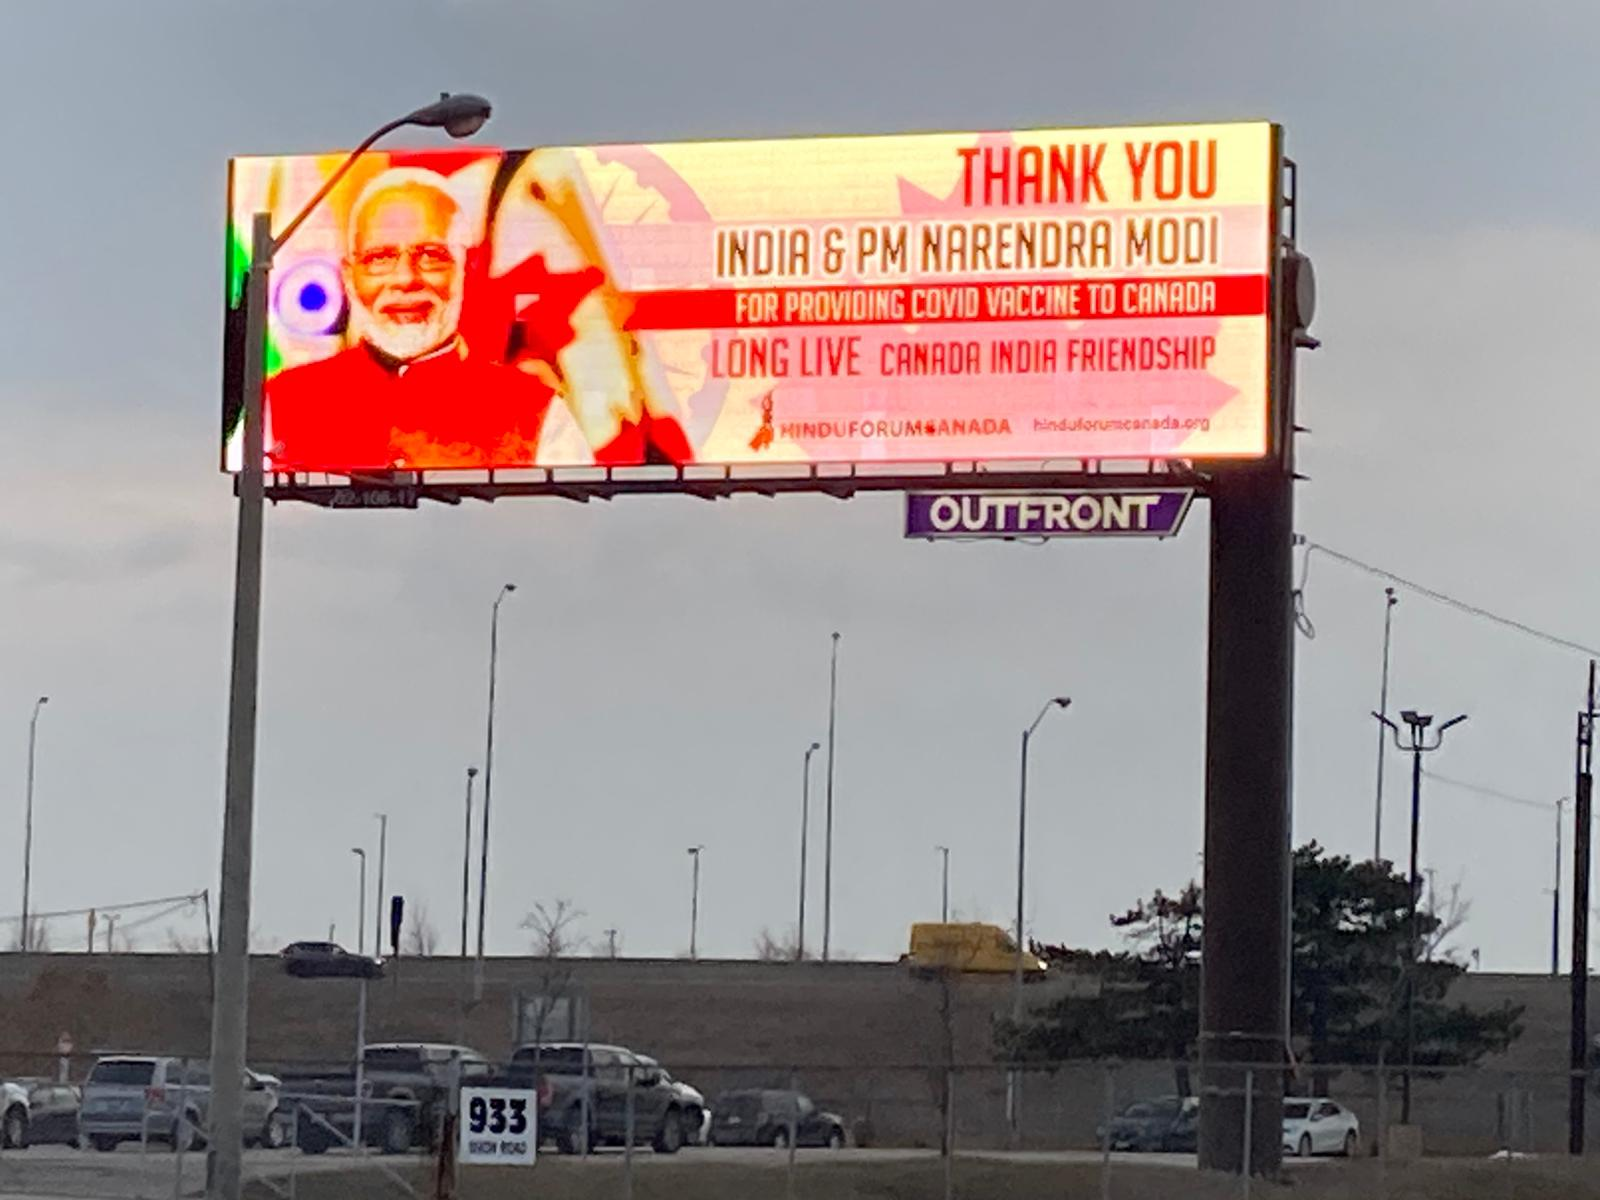 A total of nine billboards over major highways in the GTA with the message went live on Wednesday